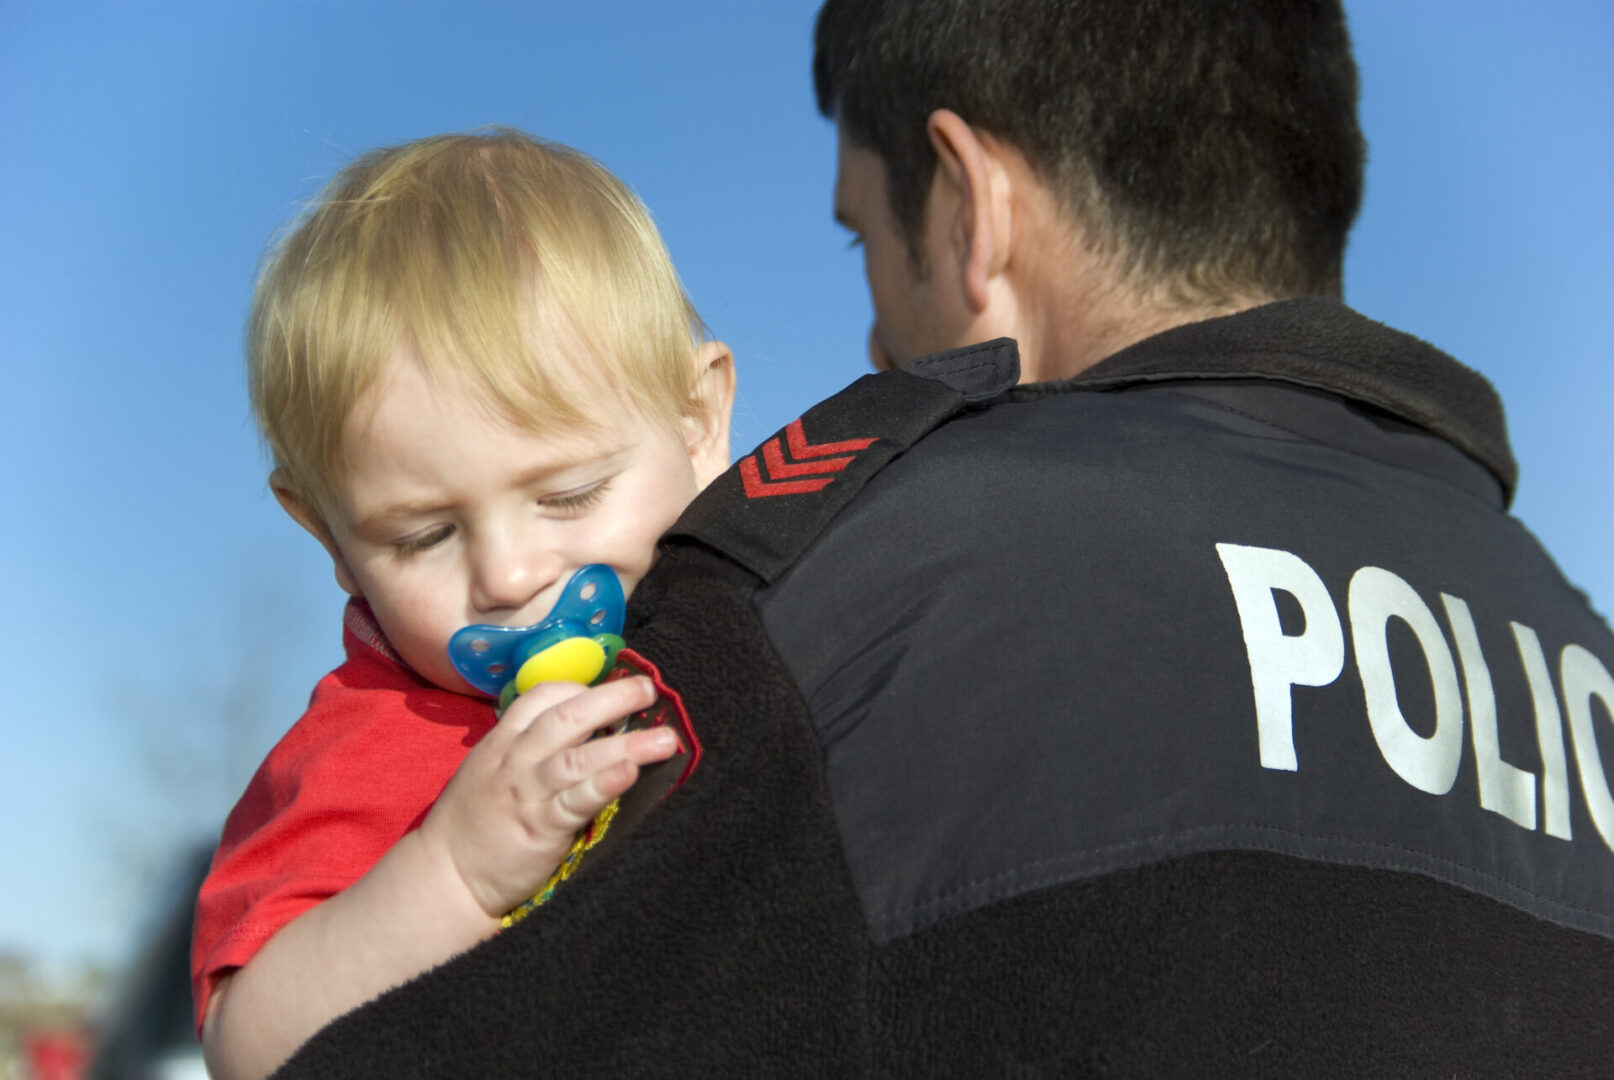 A police carrying a toddler